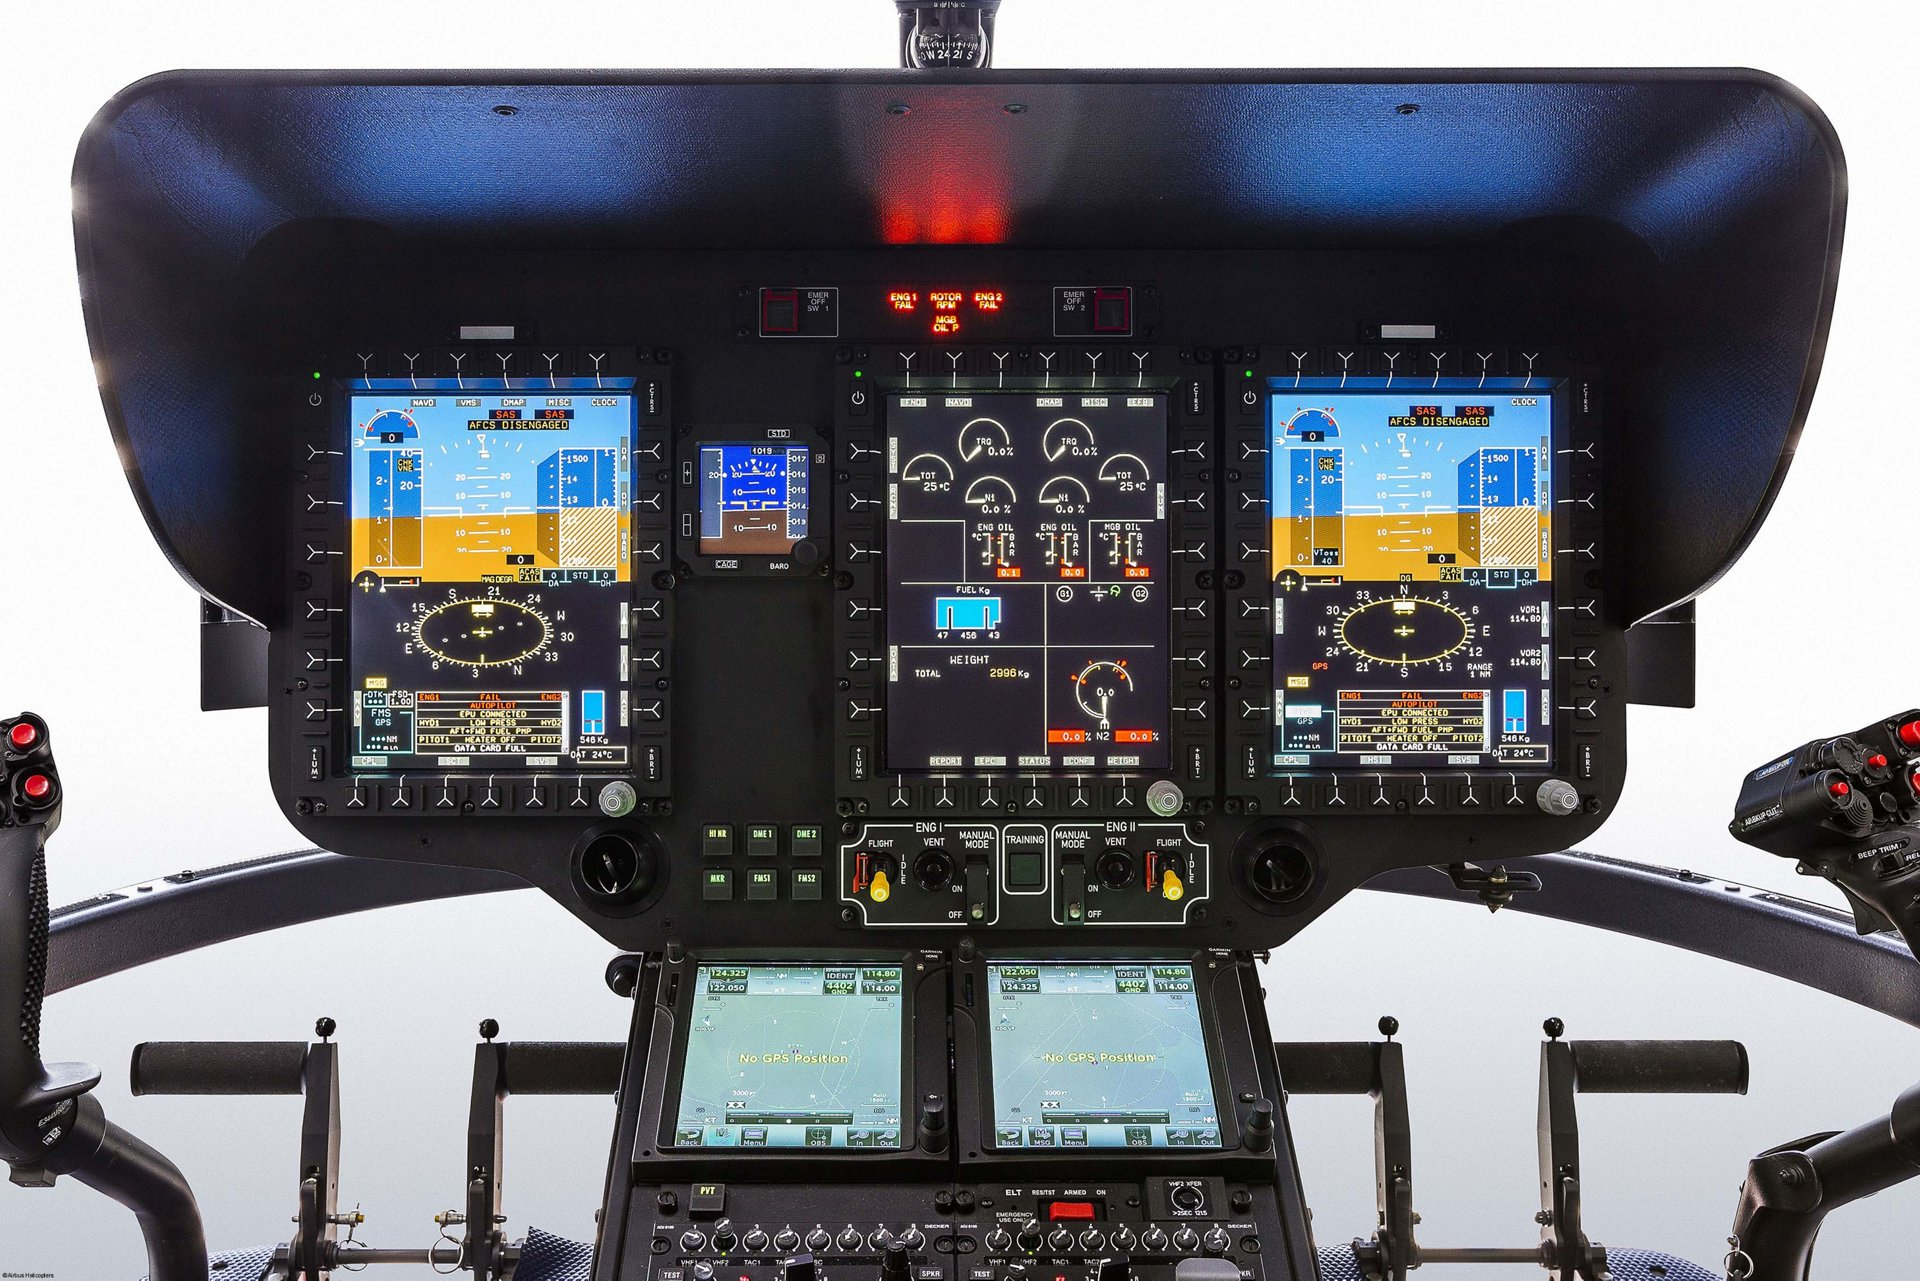 Airbus Helicopters' light-twin helicopter H135 has received the type certificate by the Federal Aviation Administration for its new Helionix cockpit.